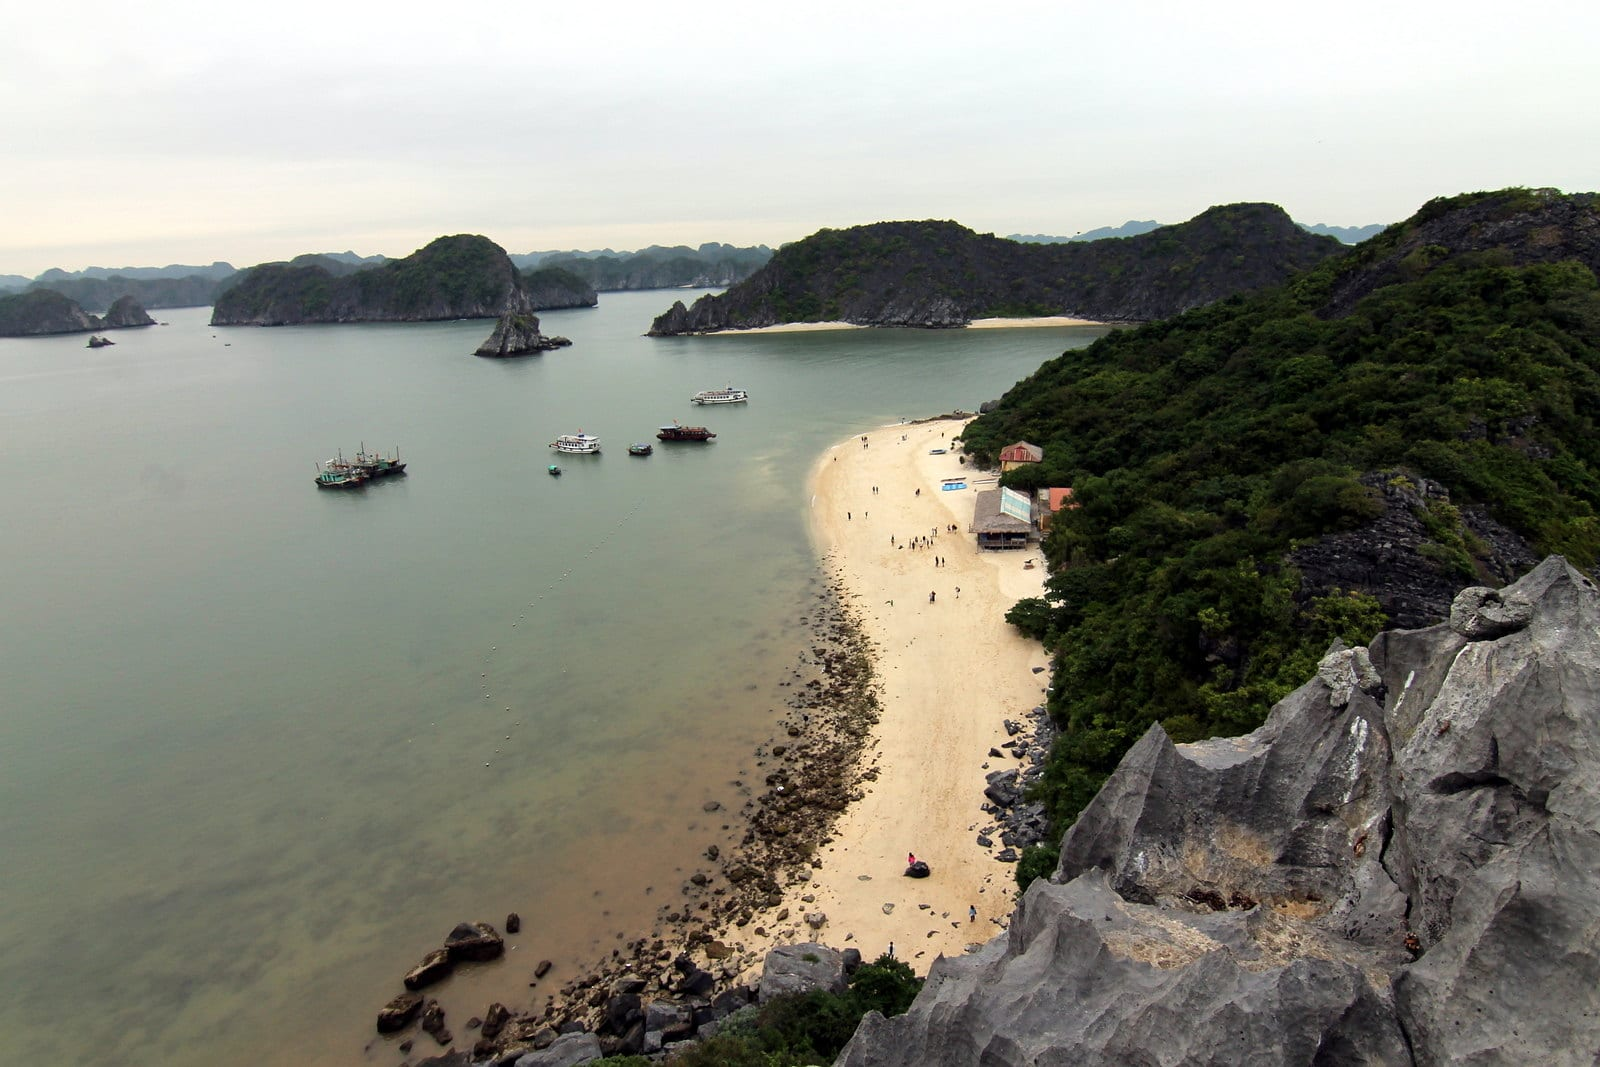 Image of the beach at Monkey Island in Vietnam